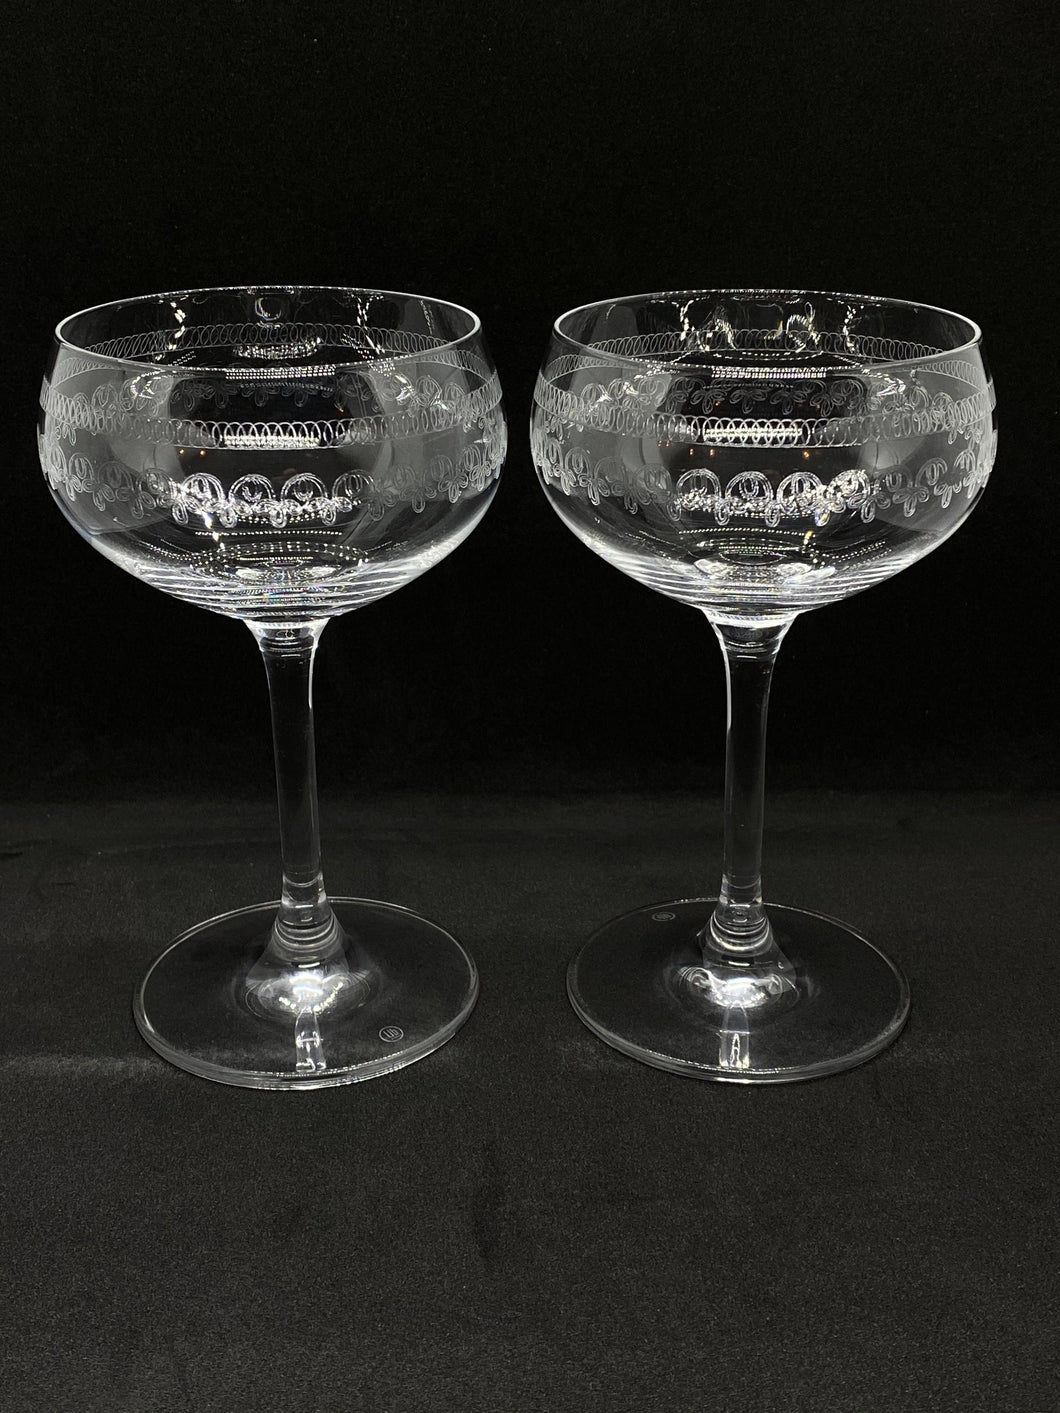 Pair of Vintage Style Coupe Glasses (180ml size) - Edinburgh Booze Delivery